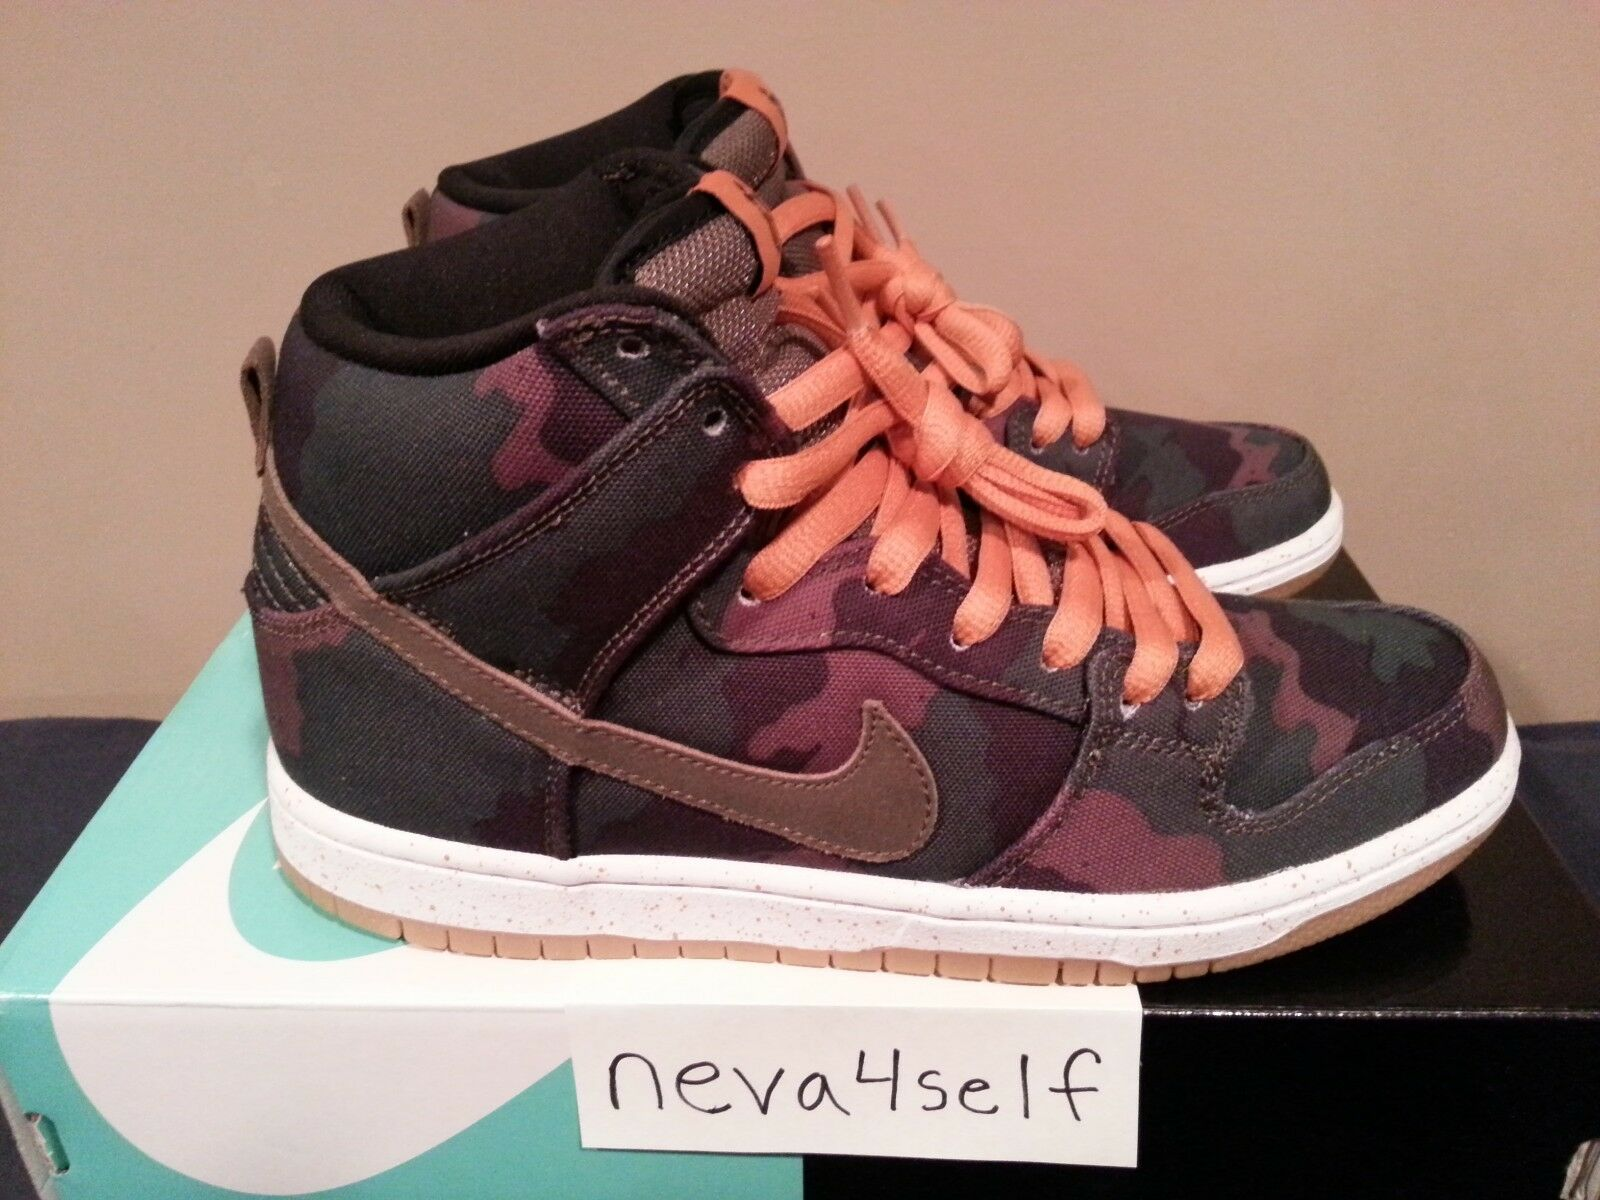 Nike Dunk High Premium SB 510 Five One O Camo Comfortable Great discount